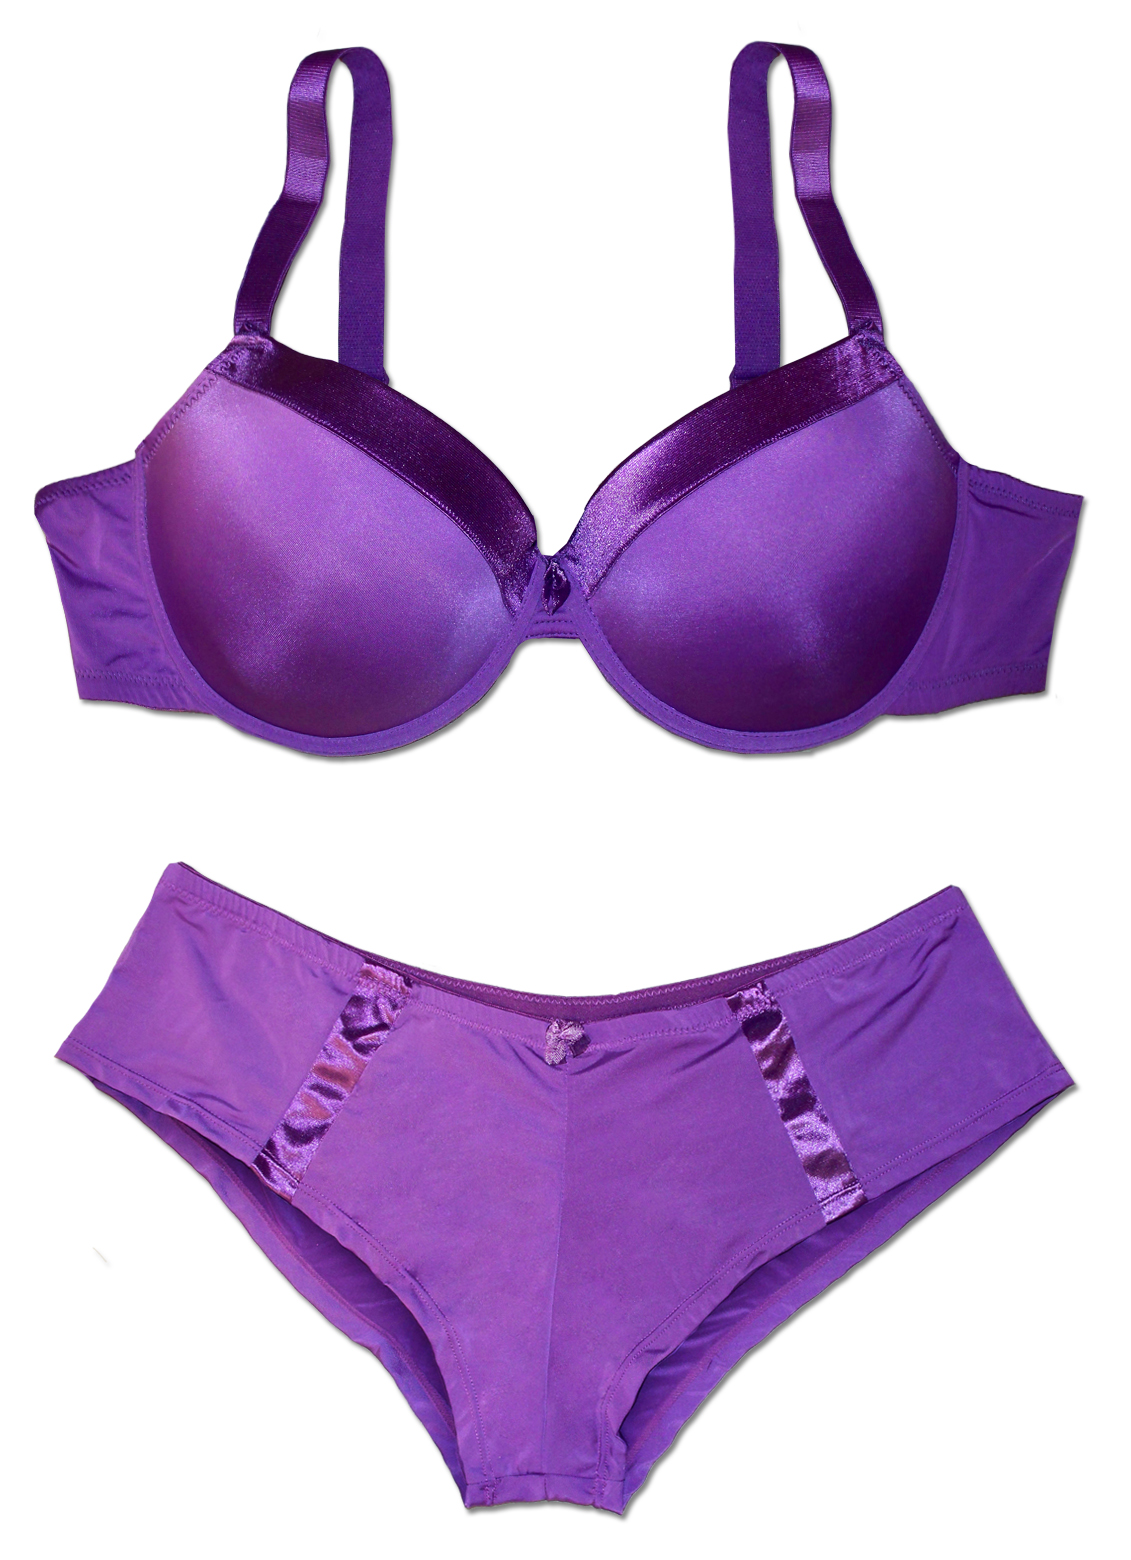 Sold out sale pretty purple or pink plus size bra underwear set 44d 4x - Outs longere ...